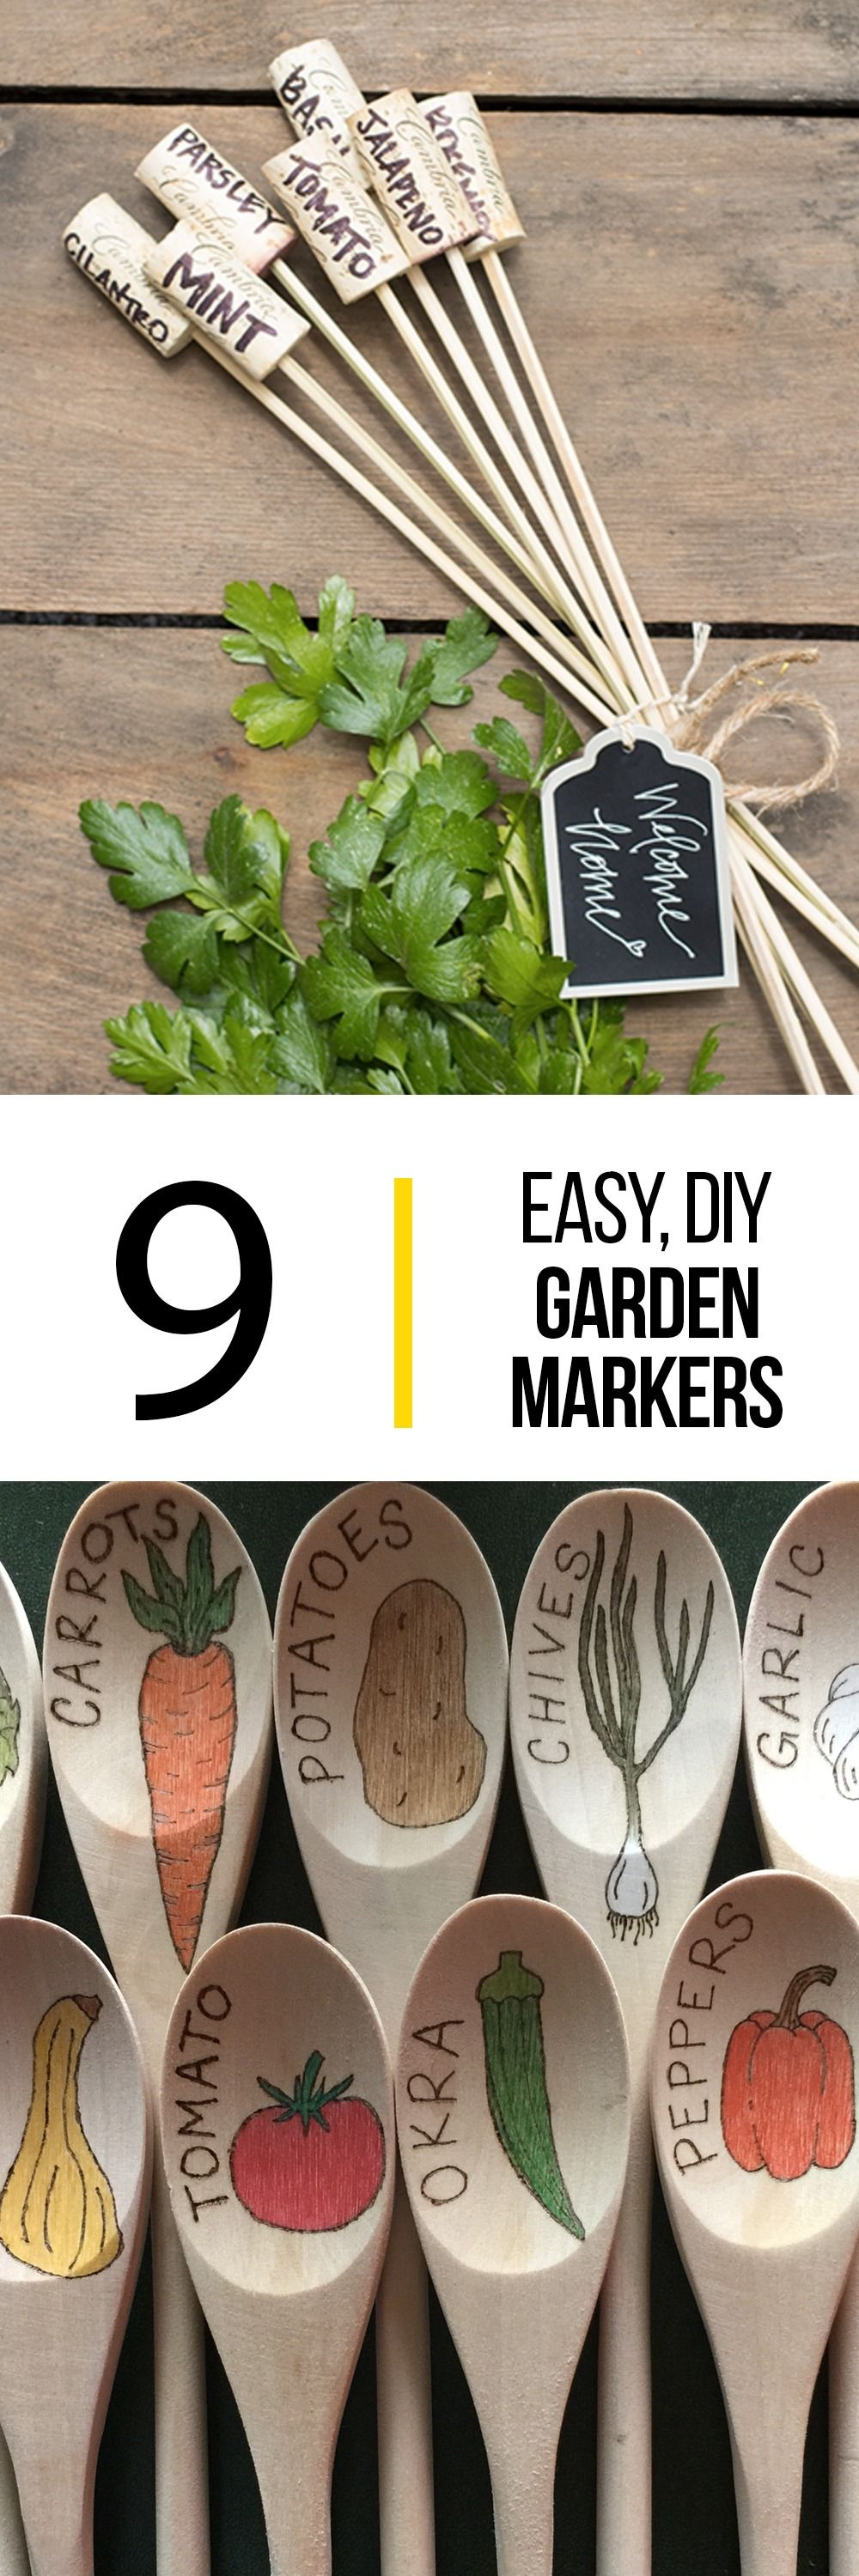 Merveilleux Get Lost In Your Garden With These Homemade DIY Garden Markers. Make Your  Vegetables Stand With Simple Materials You Can Pickup From The Dollar Store.